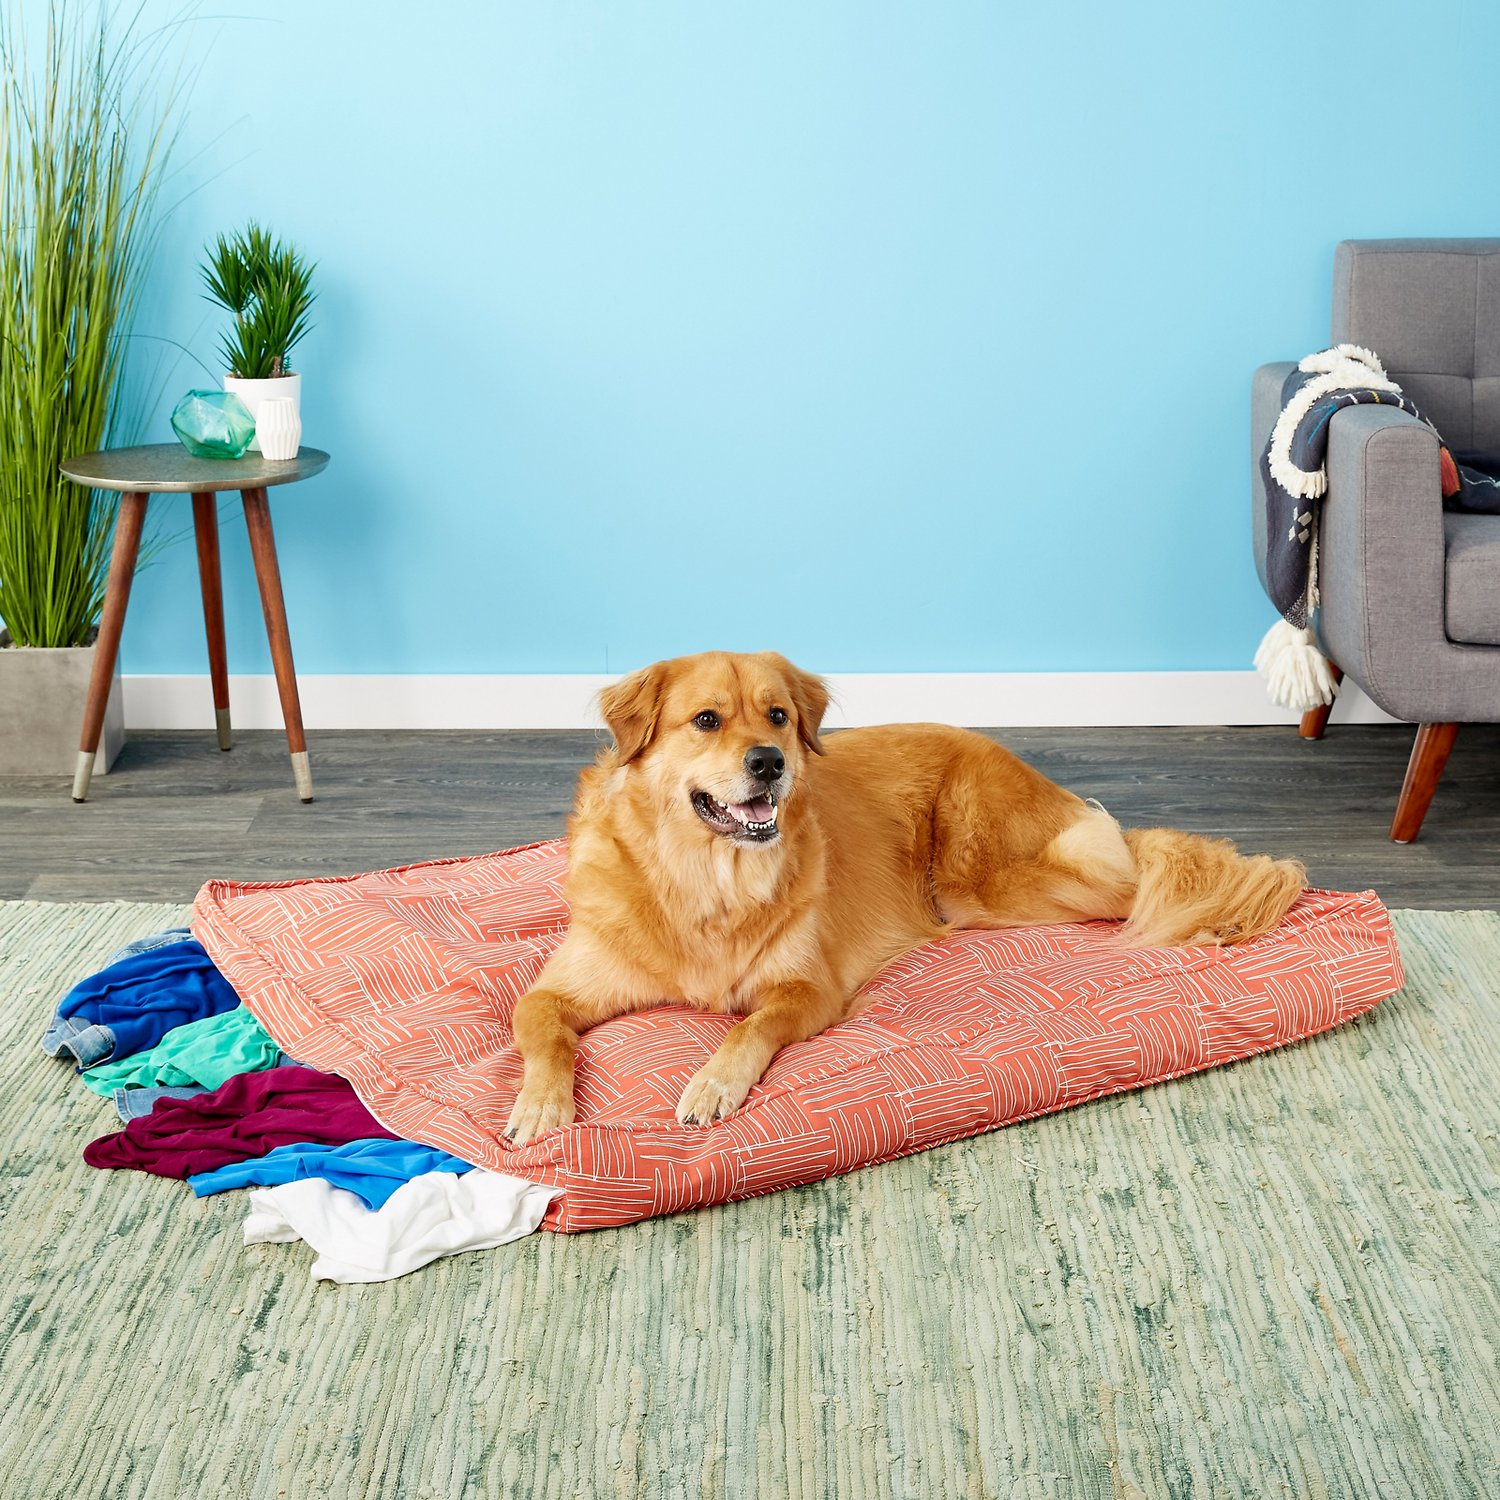 Dog-bed-duvet.. +80 Adorable Dog Bed Designs That Will Surprise You